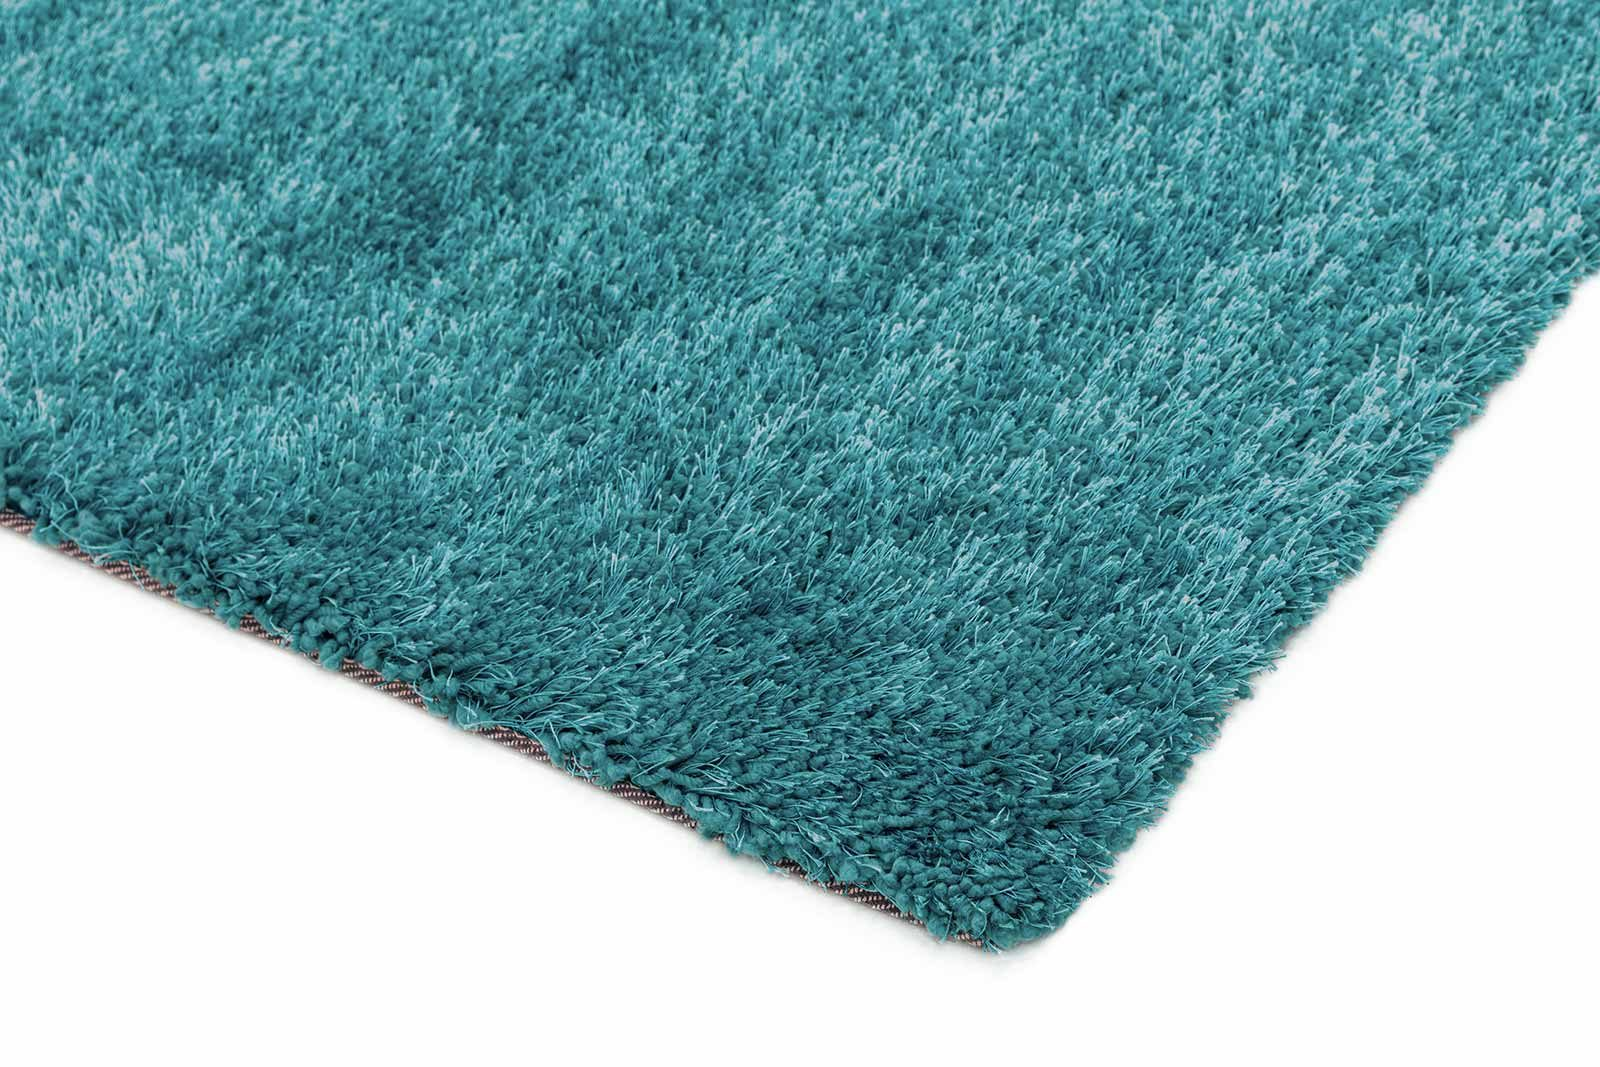 Andessi rug Mythica Teal detail 2